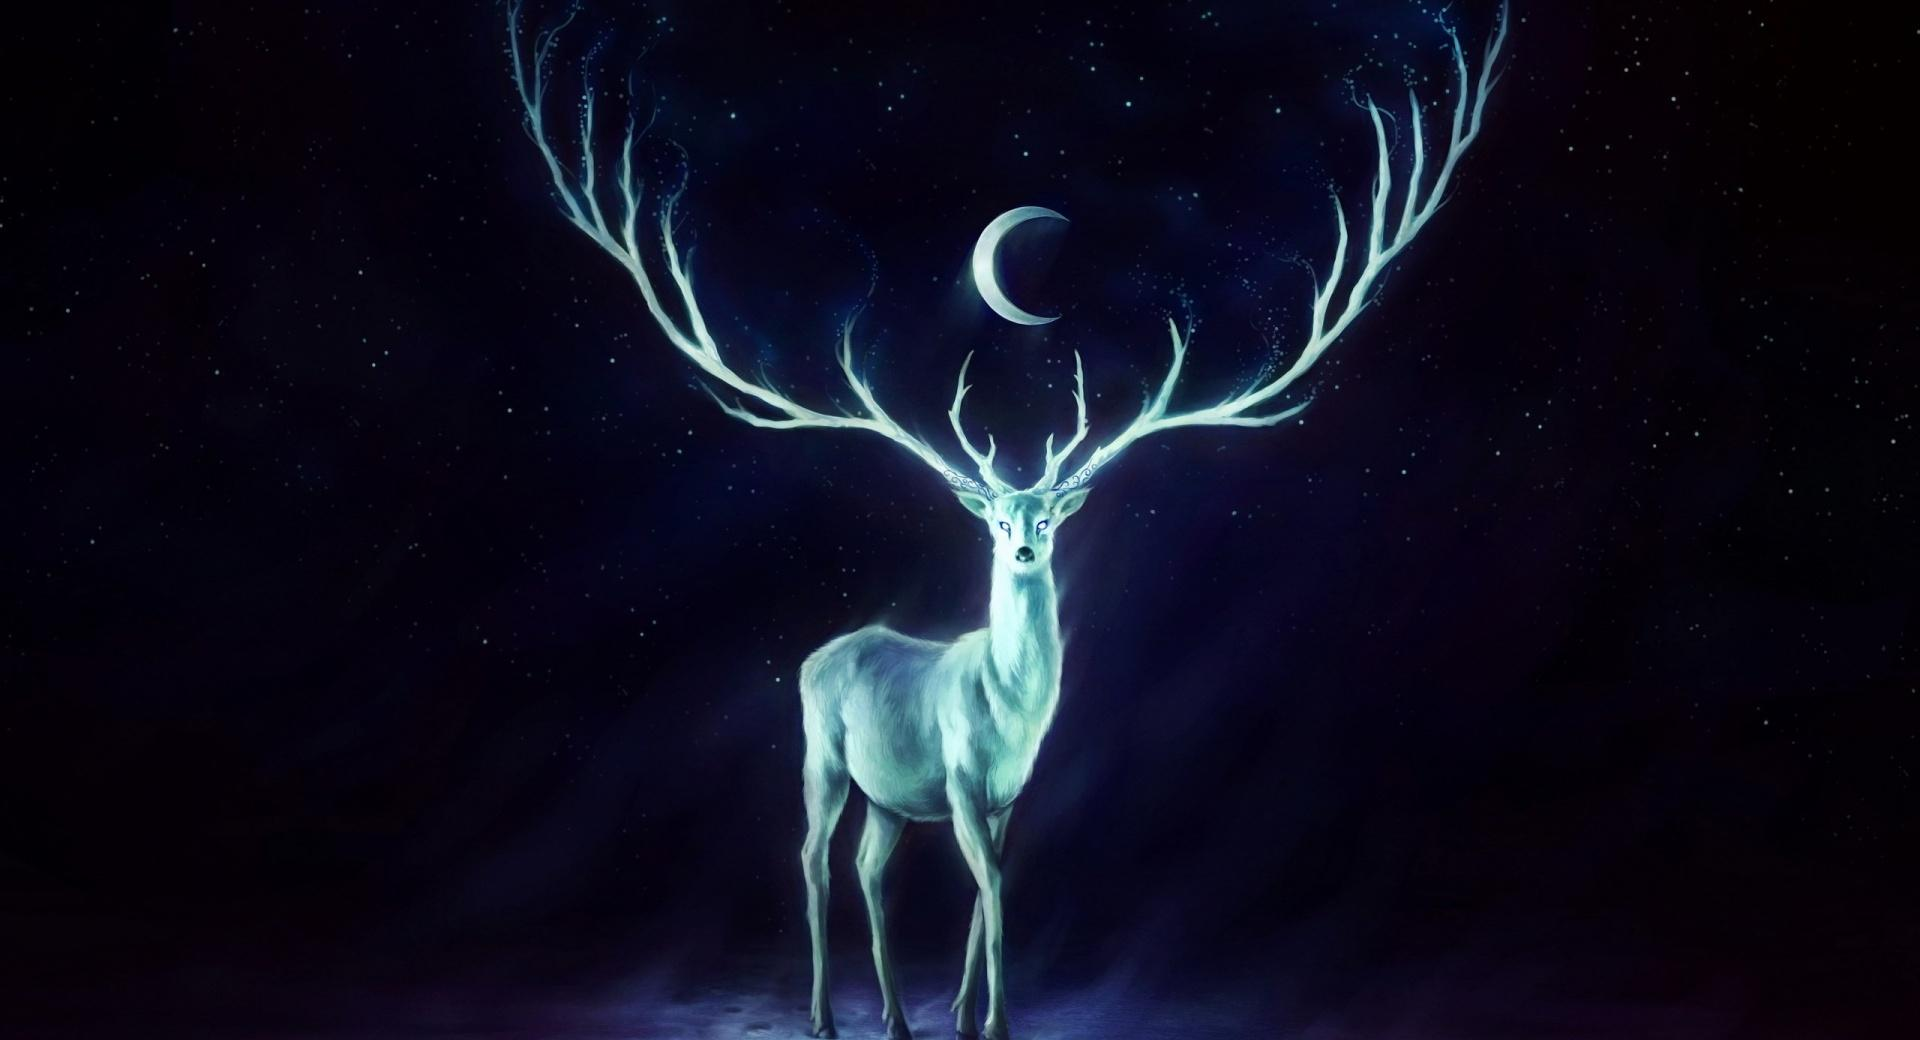 Stag Painting wallpapers HD quality